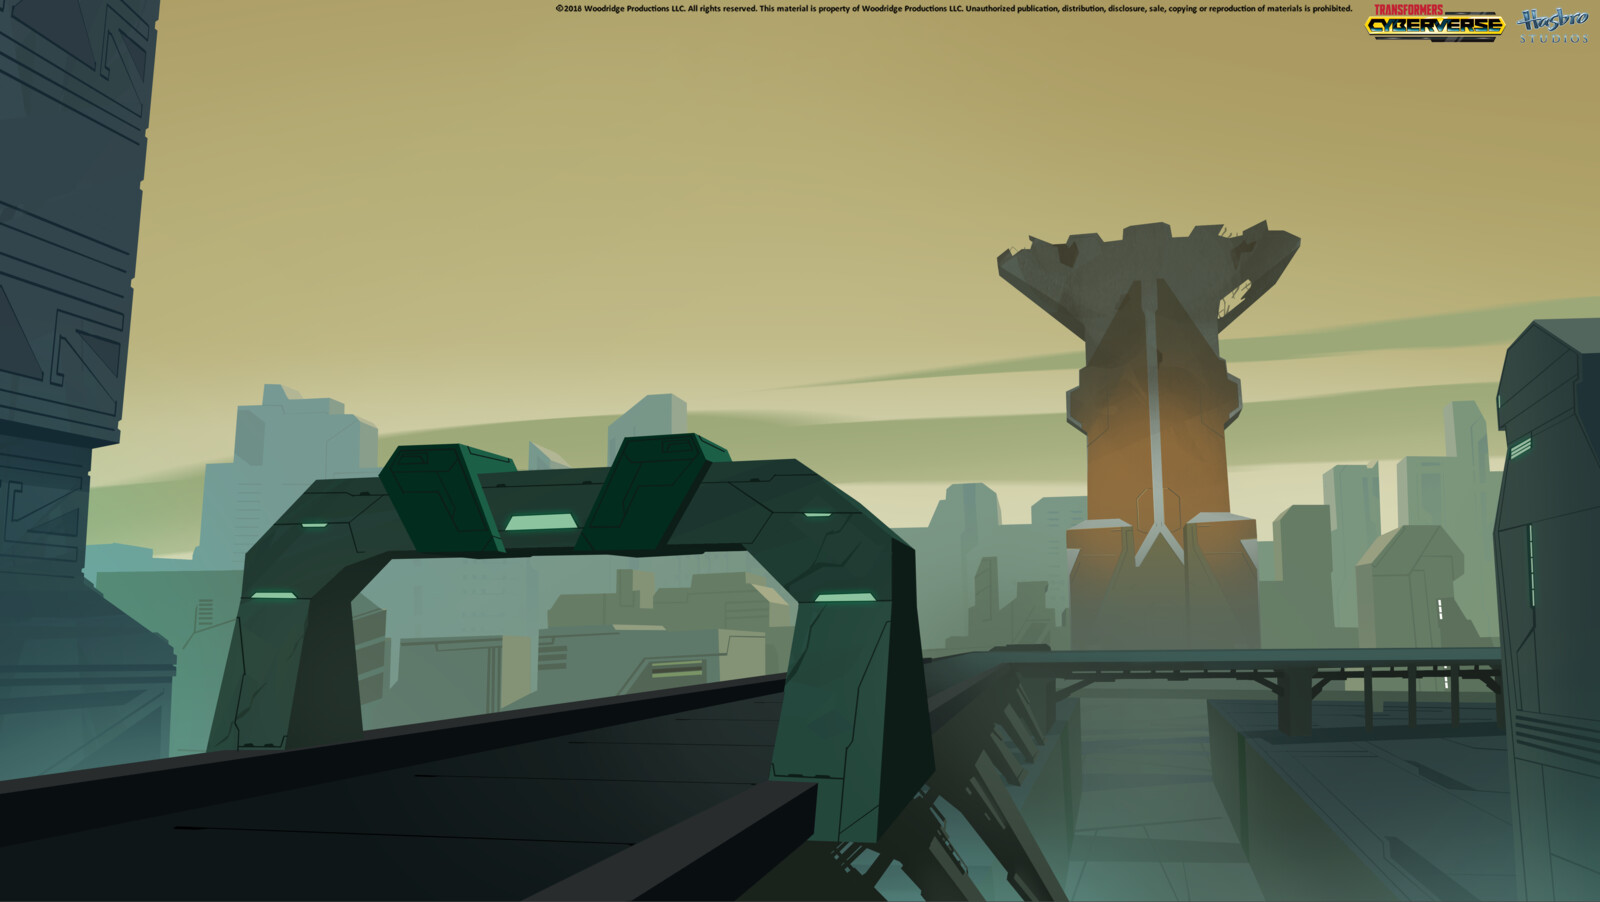 Key background based on a concept by Graham Finnigan. You can check more of Graham's works here: www.artstation.com/gfinn